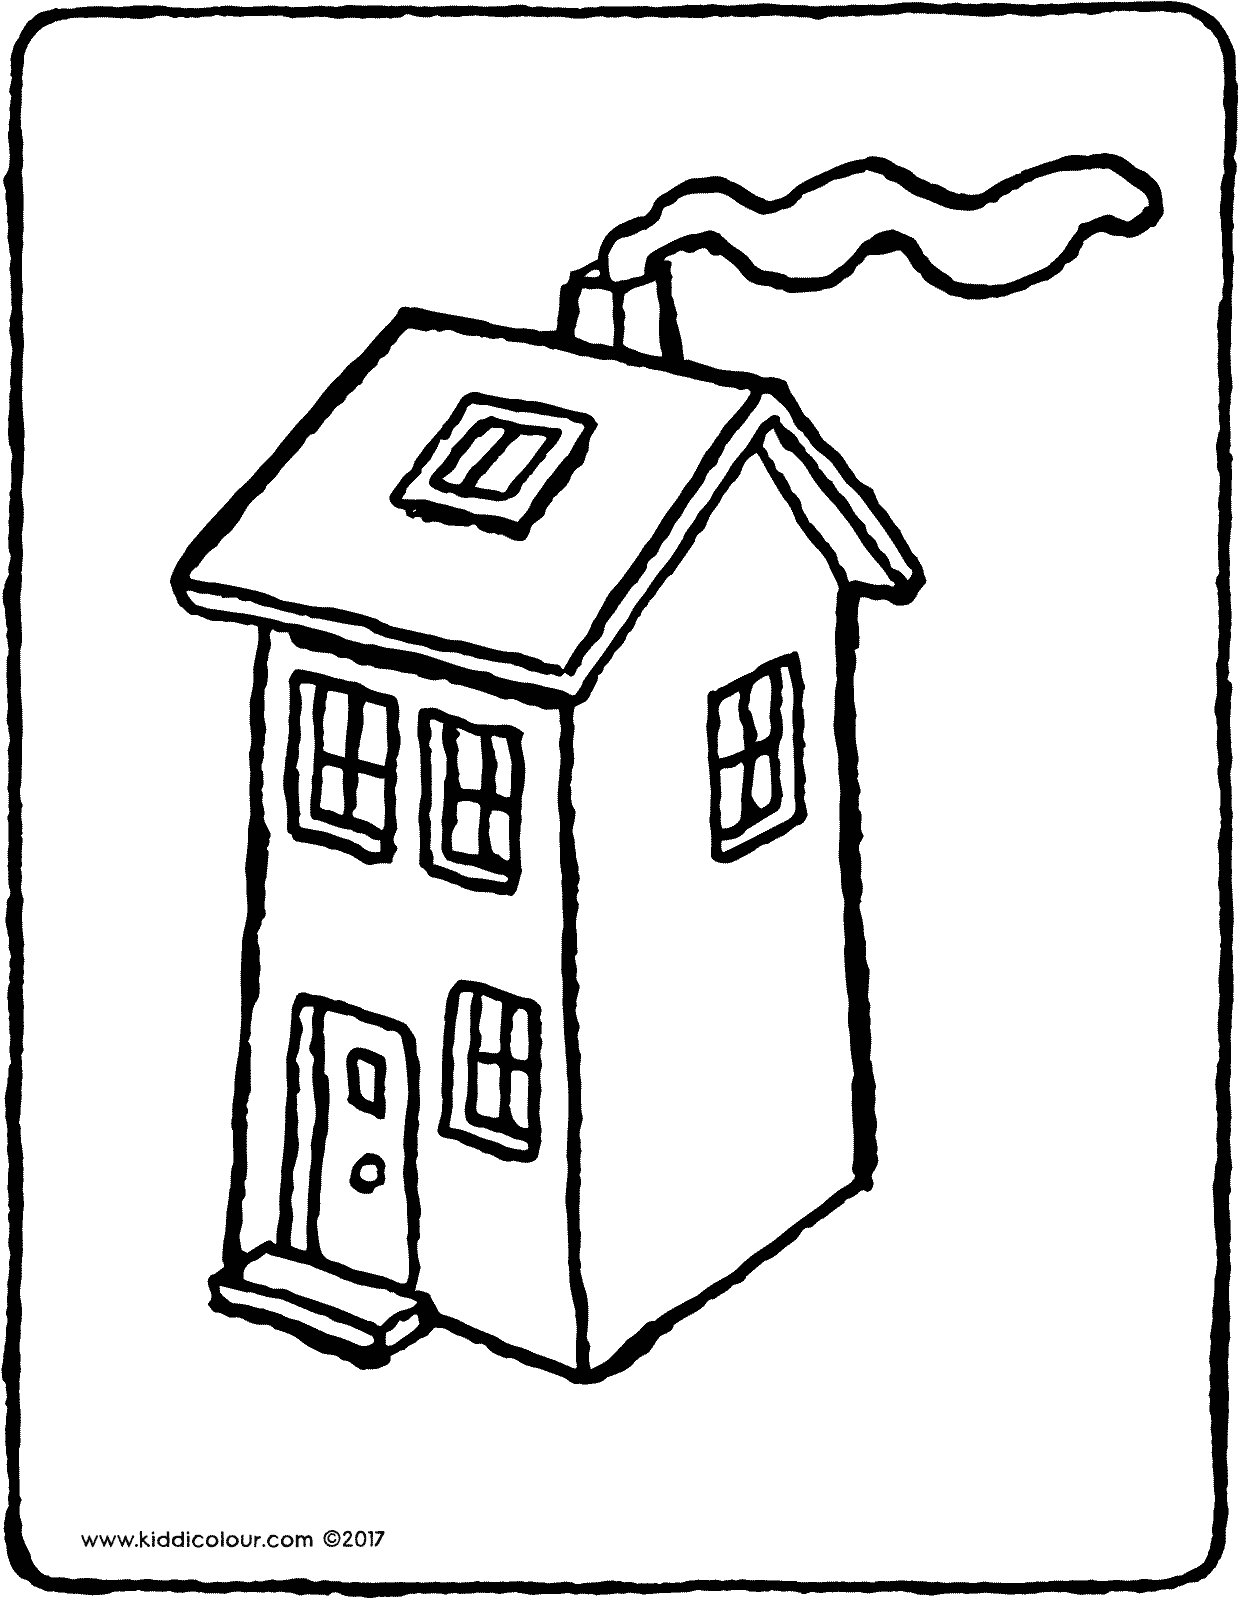 coloring image of house house kiddicolour house image of coloring